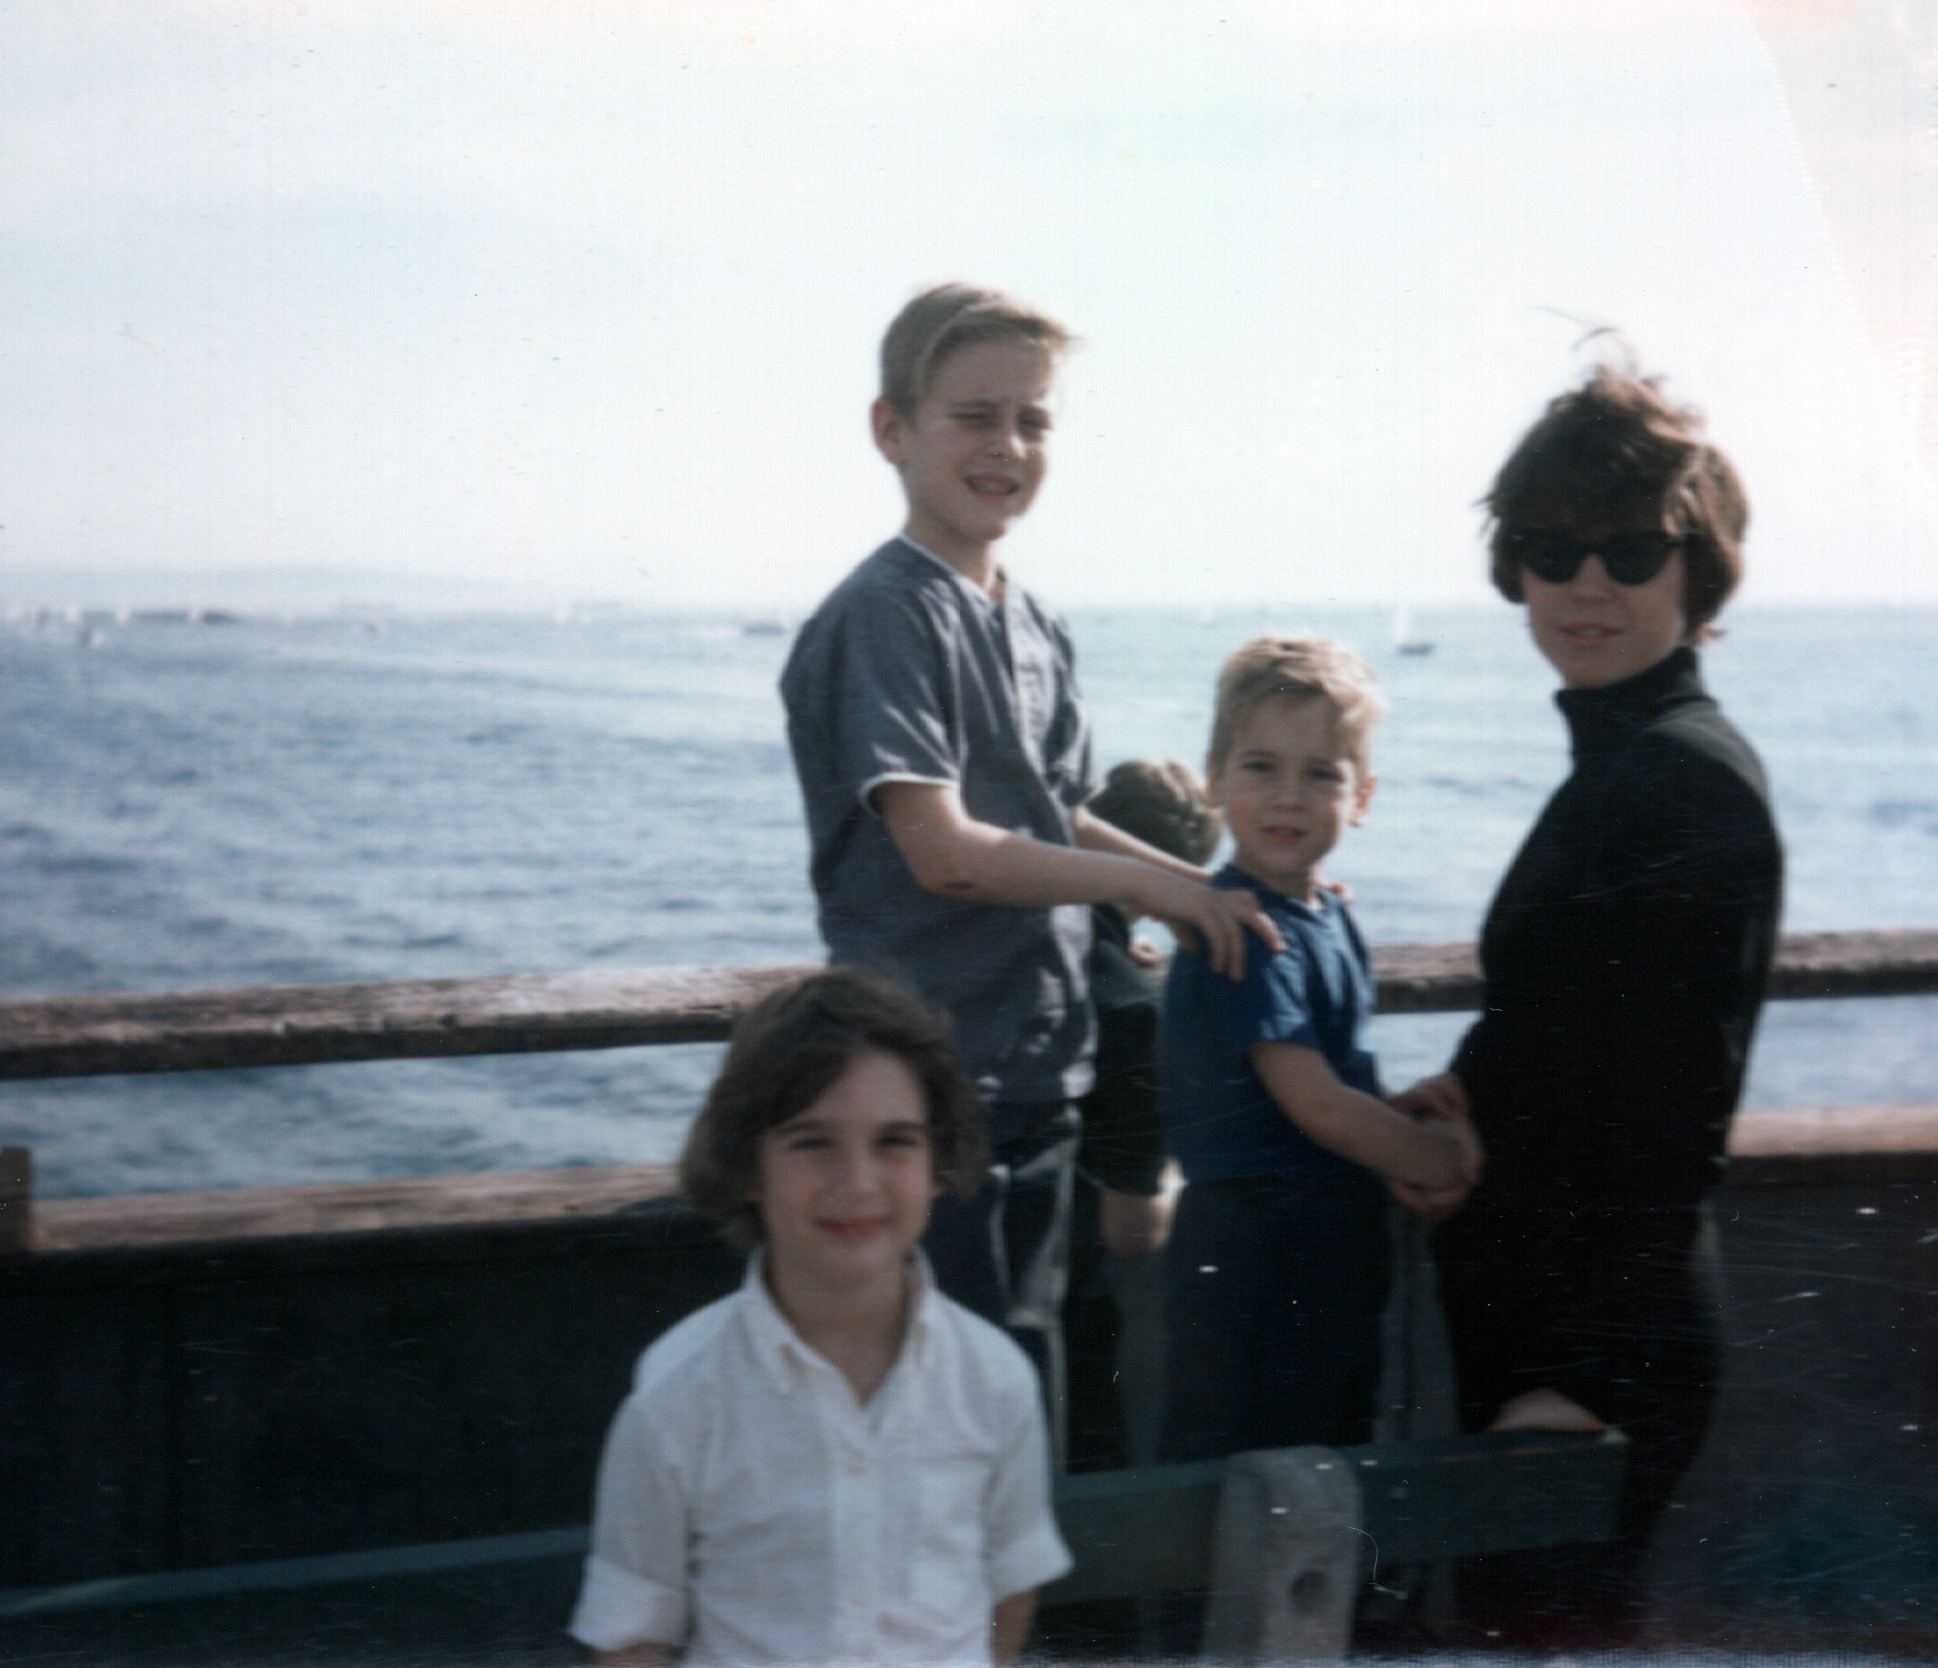 Kim, Terry, Roger & Mom on the Pier